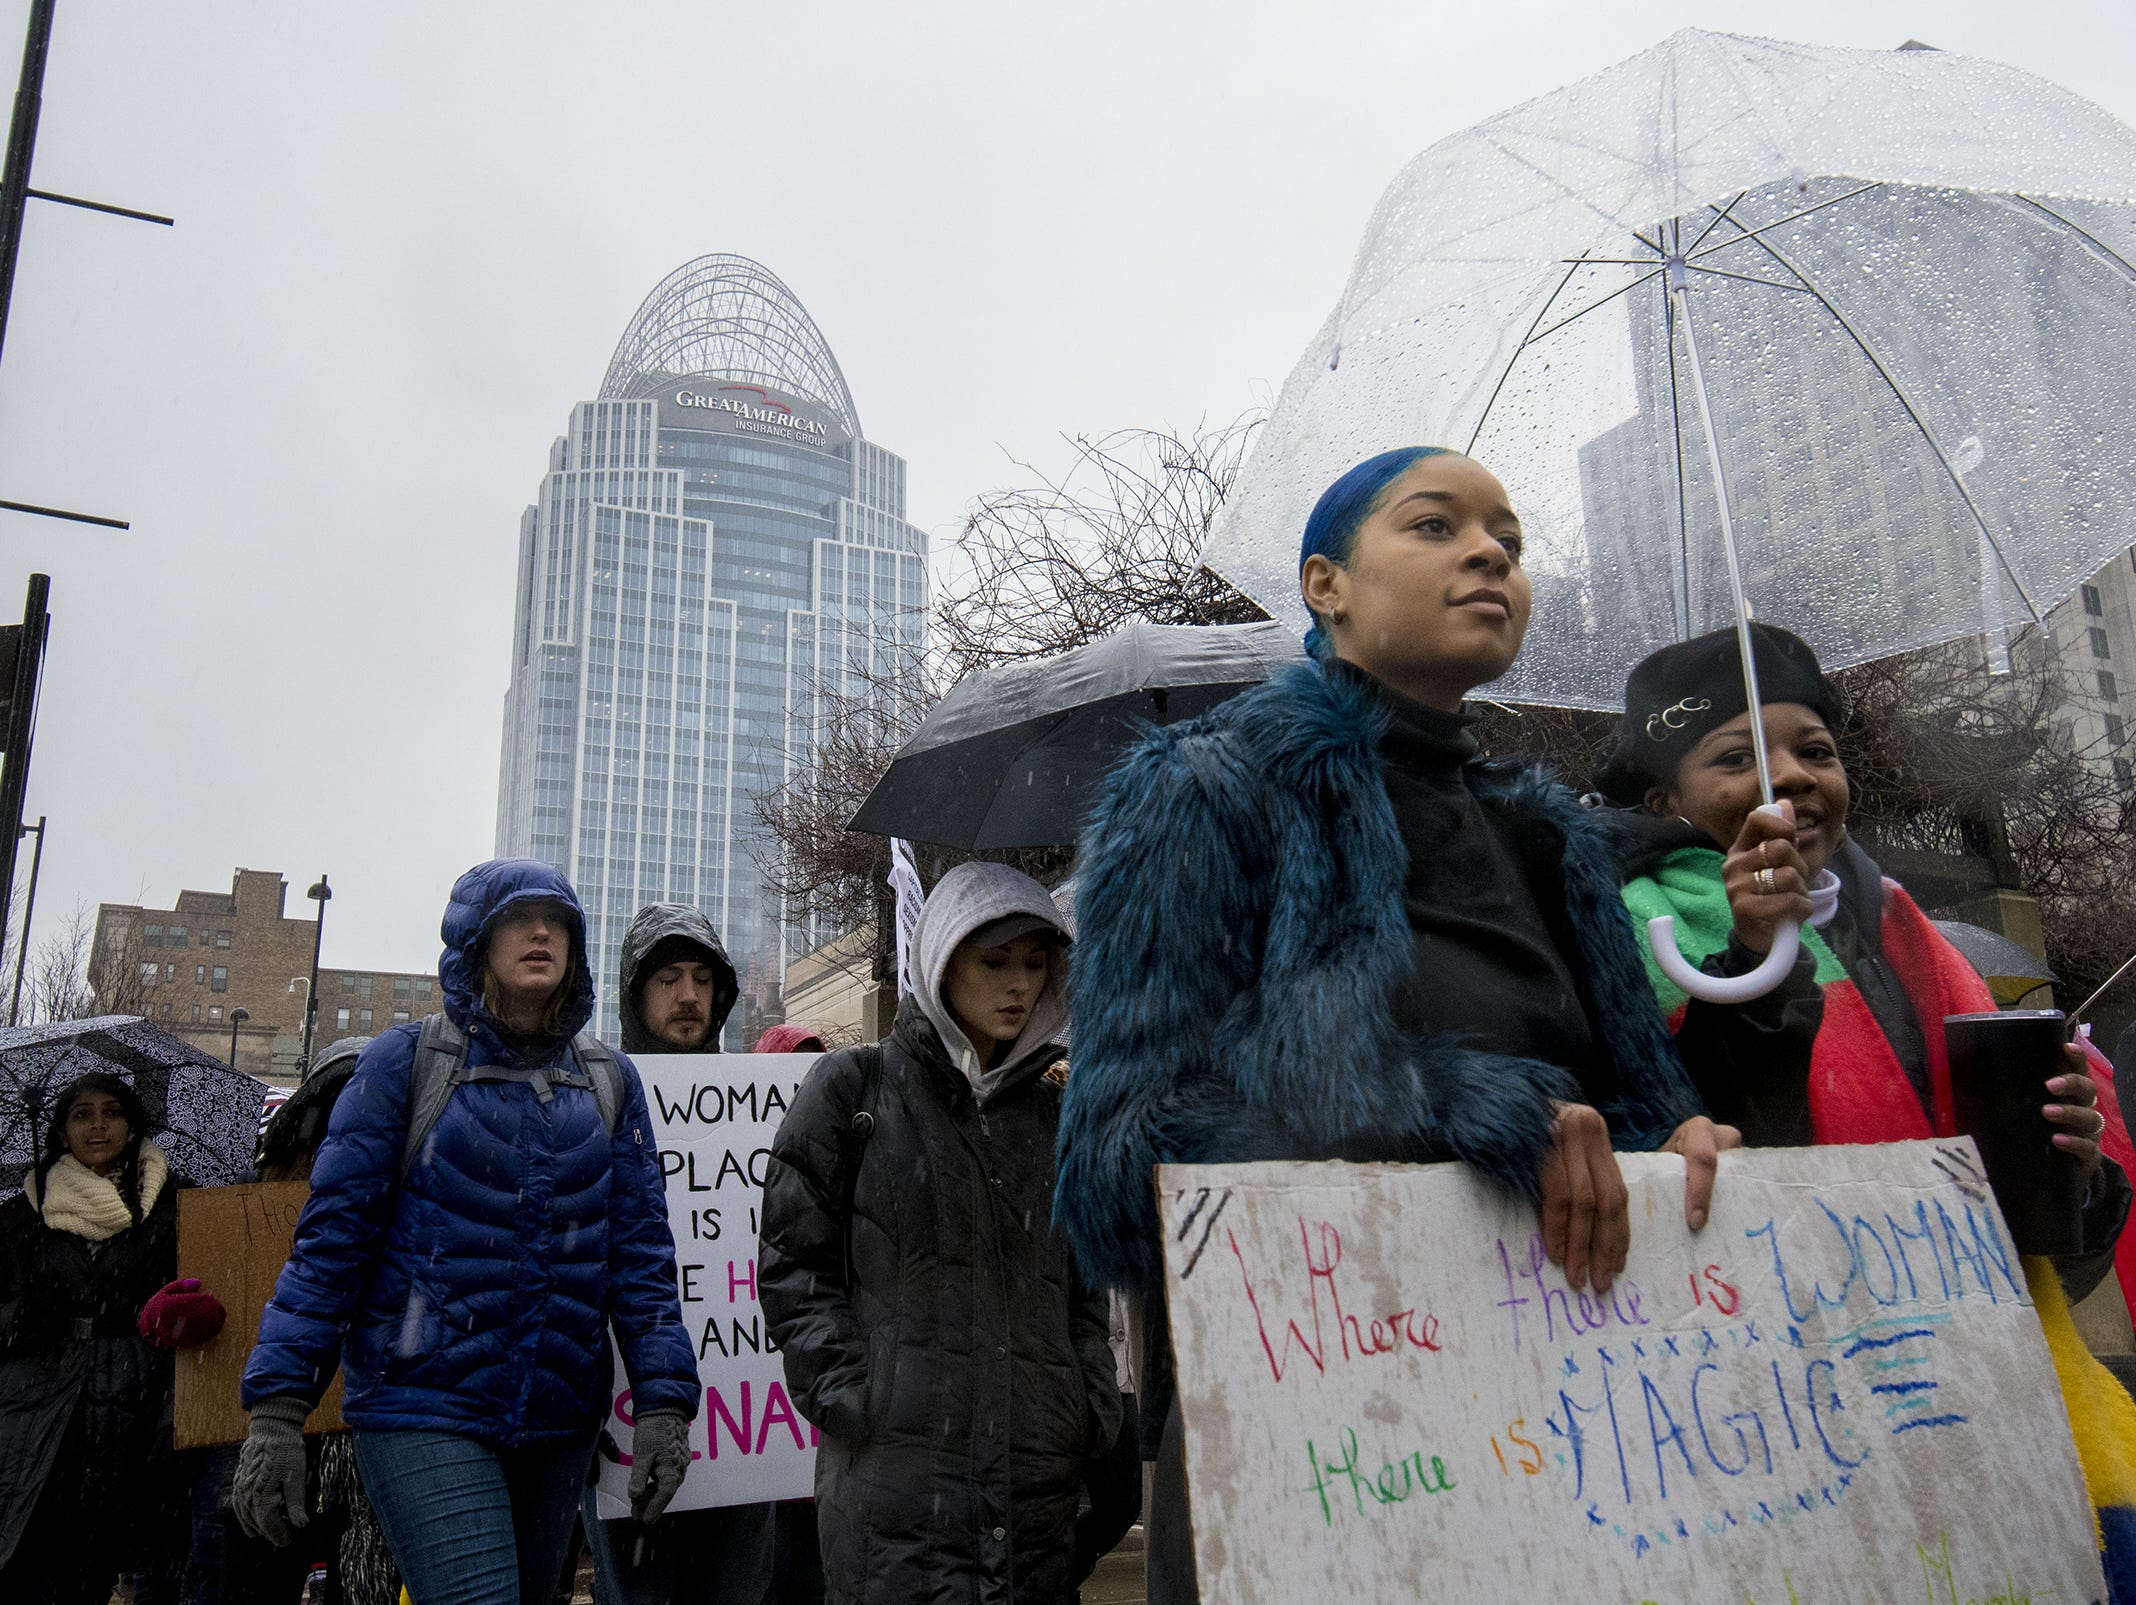 Demonstrators make heir way up Broadway Street during the 2019 Women's March organized by the Cincinnati chapters of Socialist Alternative, Democratic Socialists of America and the International Socialist Organization Saturday, January 19, 2019 in Cincinnati, Ohio.